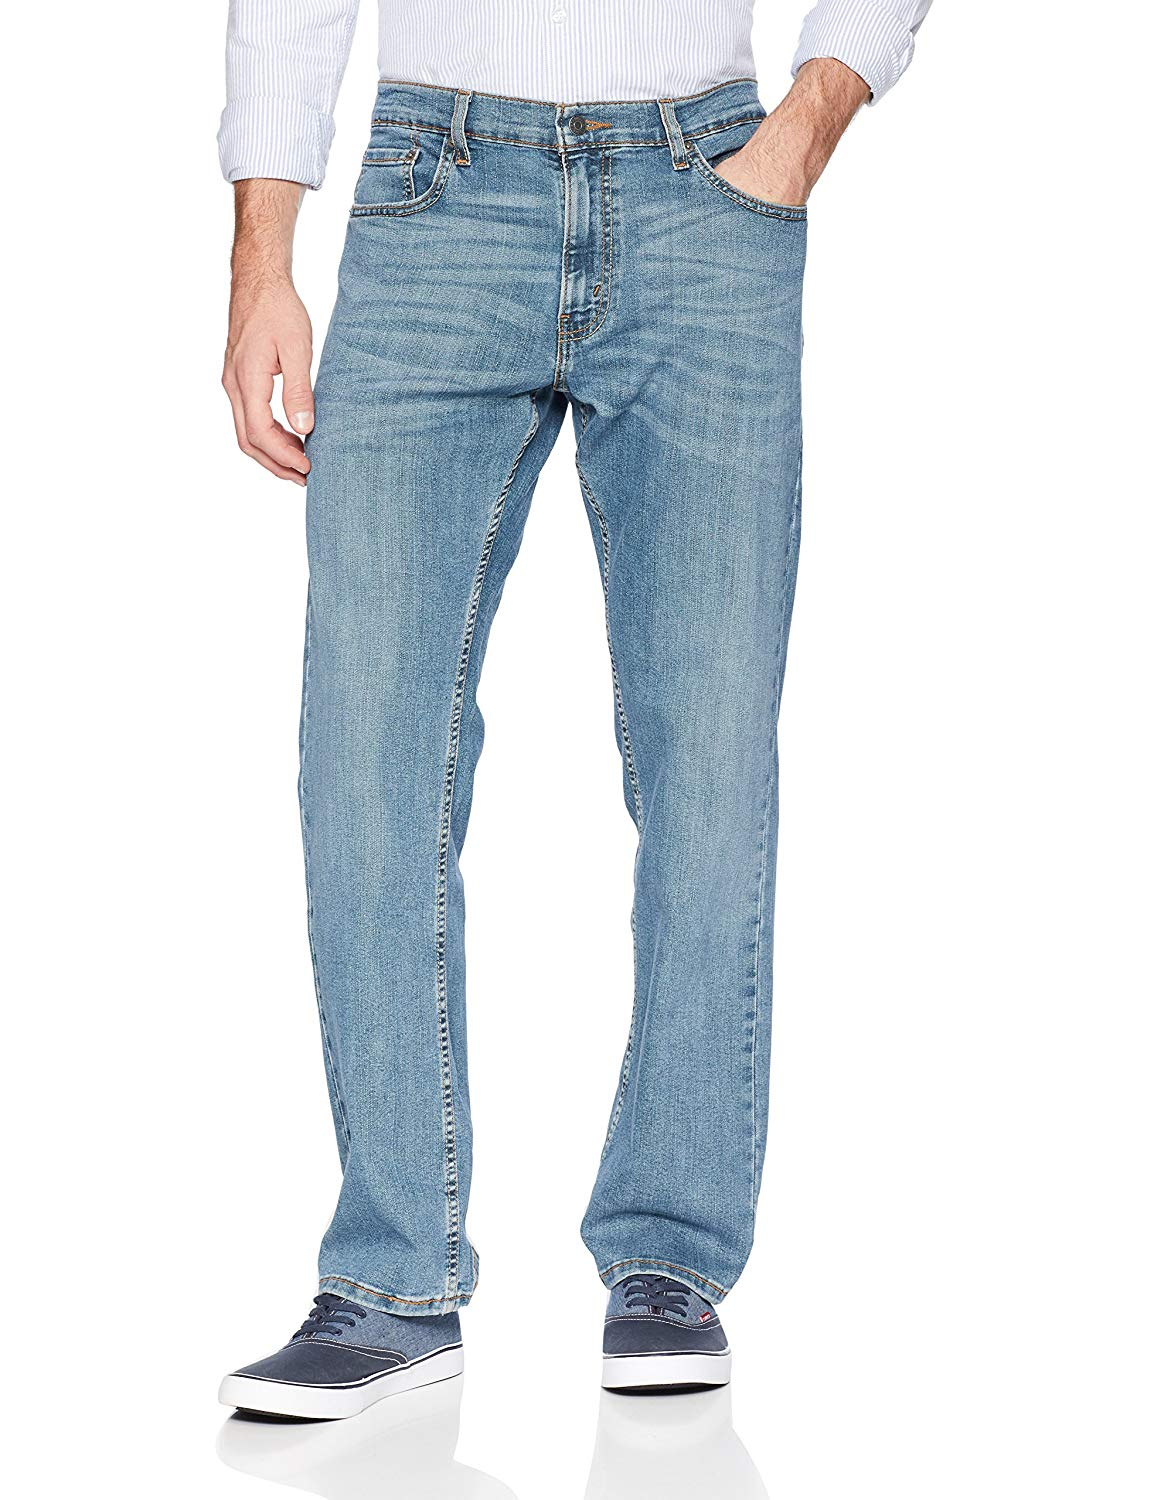 Levi-039-s-Jeans-Signature-Gold-by-Levi-Strauss-NEW-Titan-Blue-Men-Relaxed-Fit-Jeans